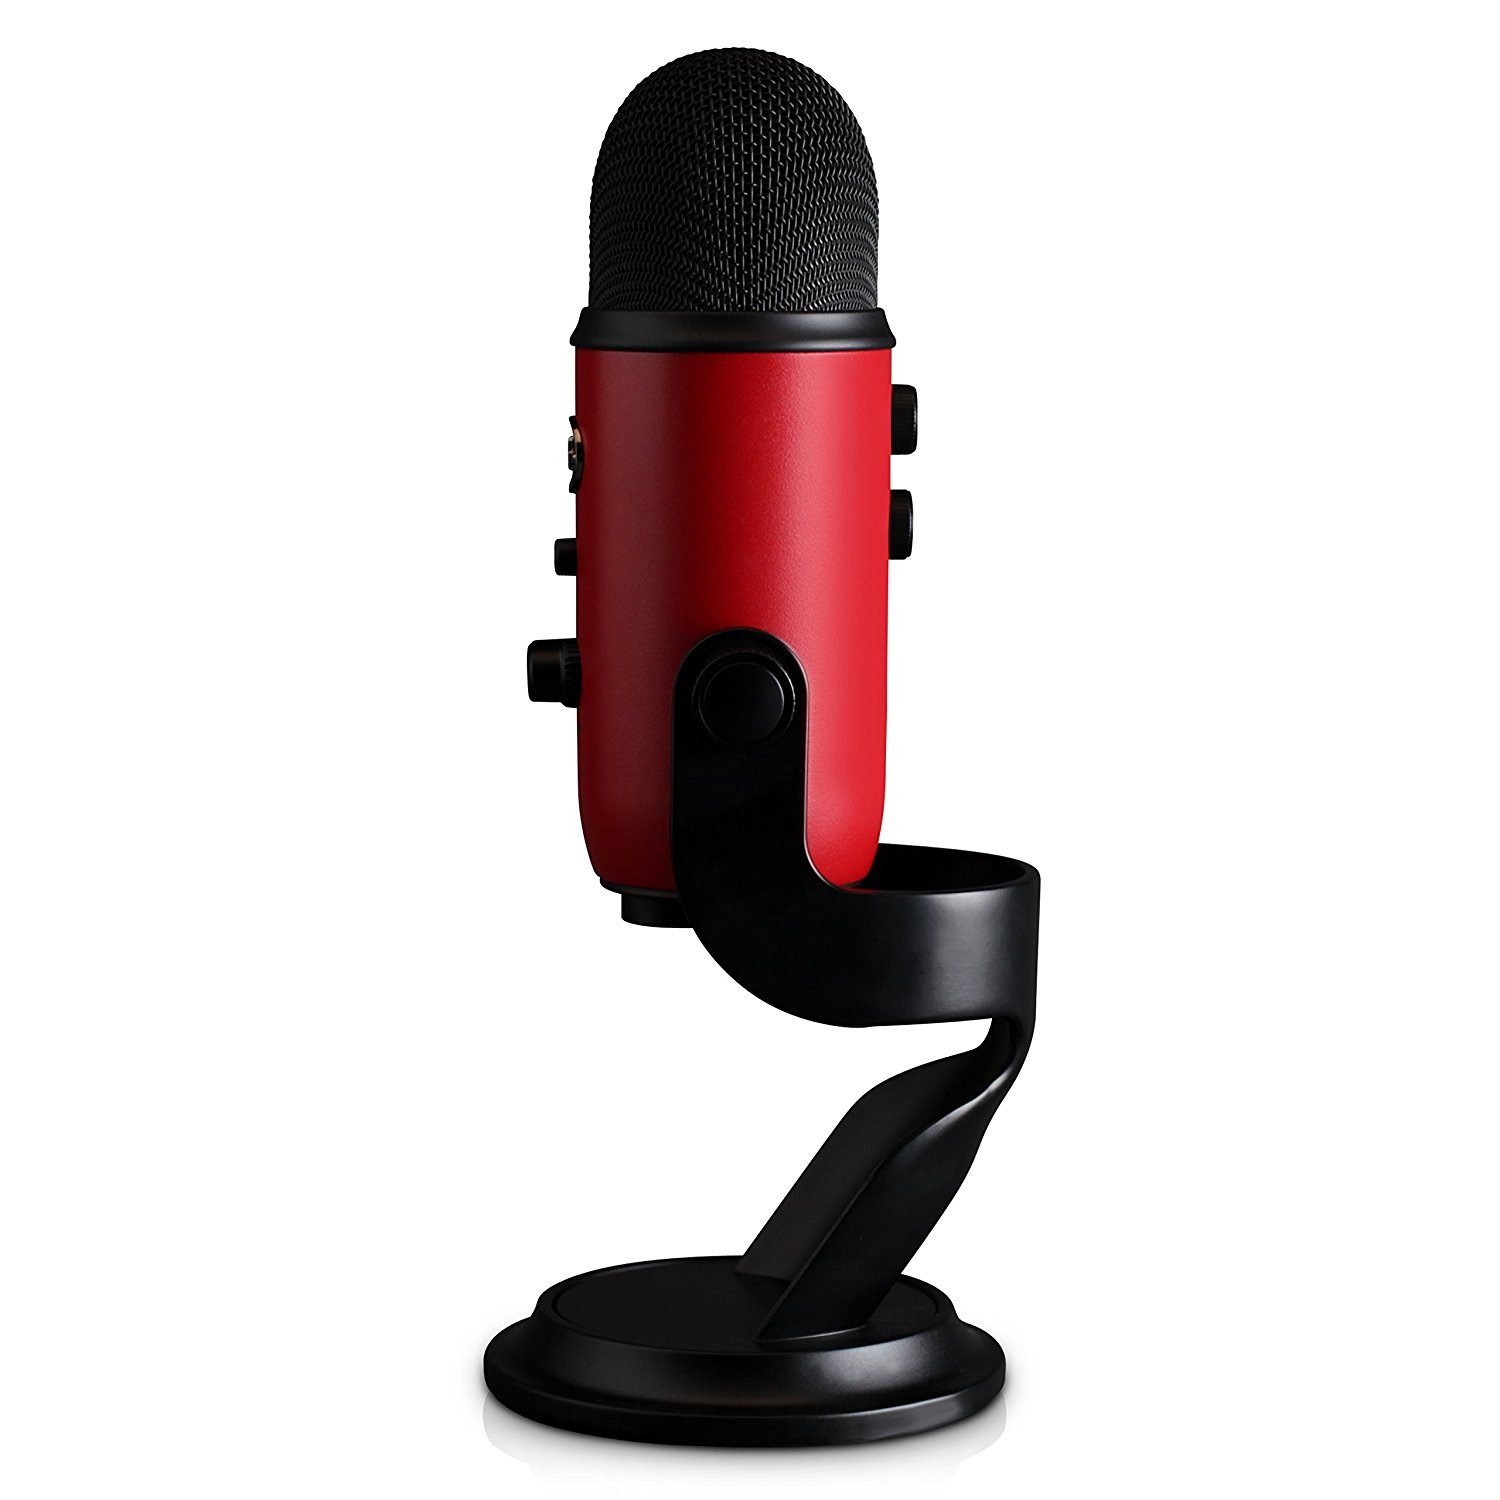 Blue Yeti USB Microphone Satin Red